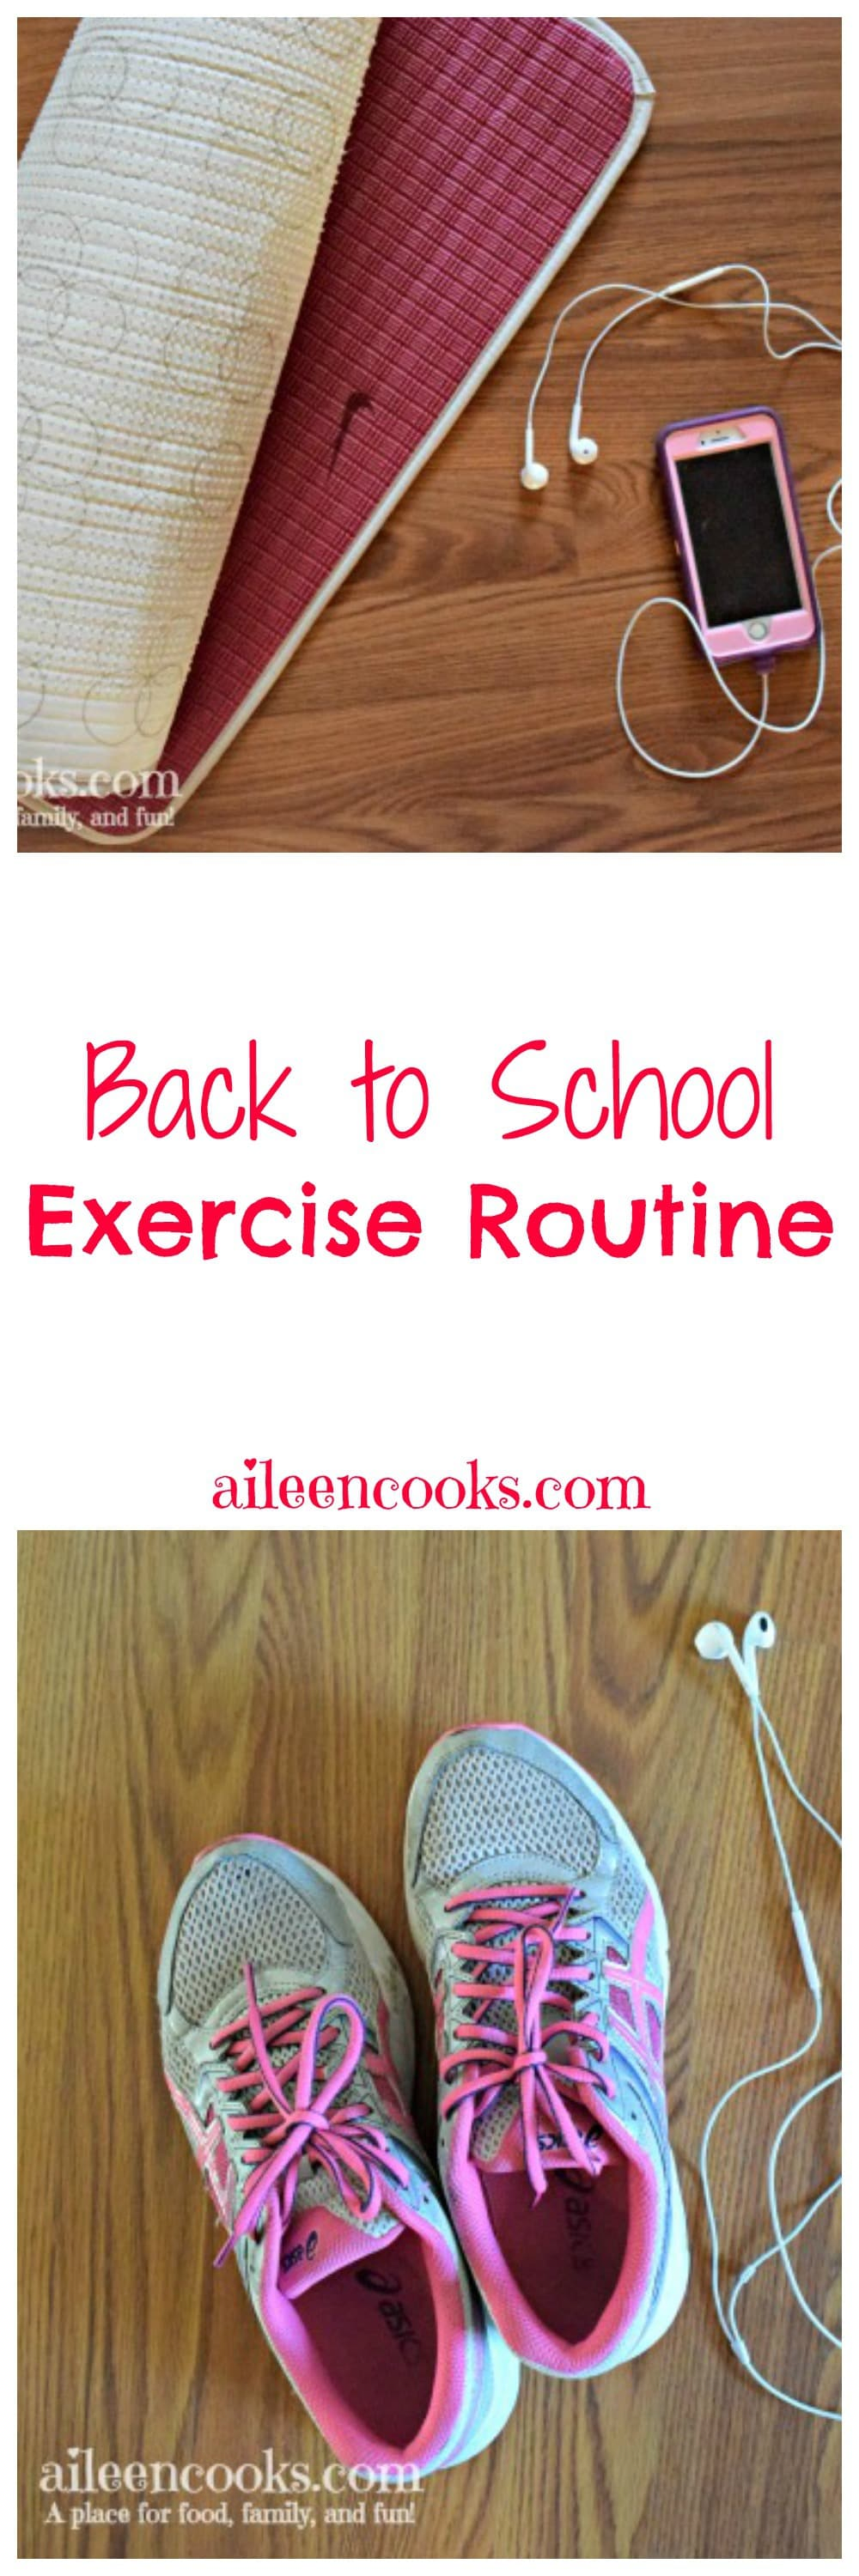 Back to school exercise routine for an out of shape mom of 3. Here is my realistic workout plan - in between chaeffeuring kids to and from school.